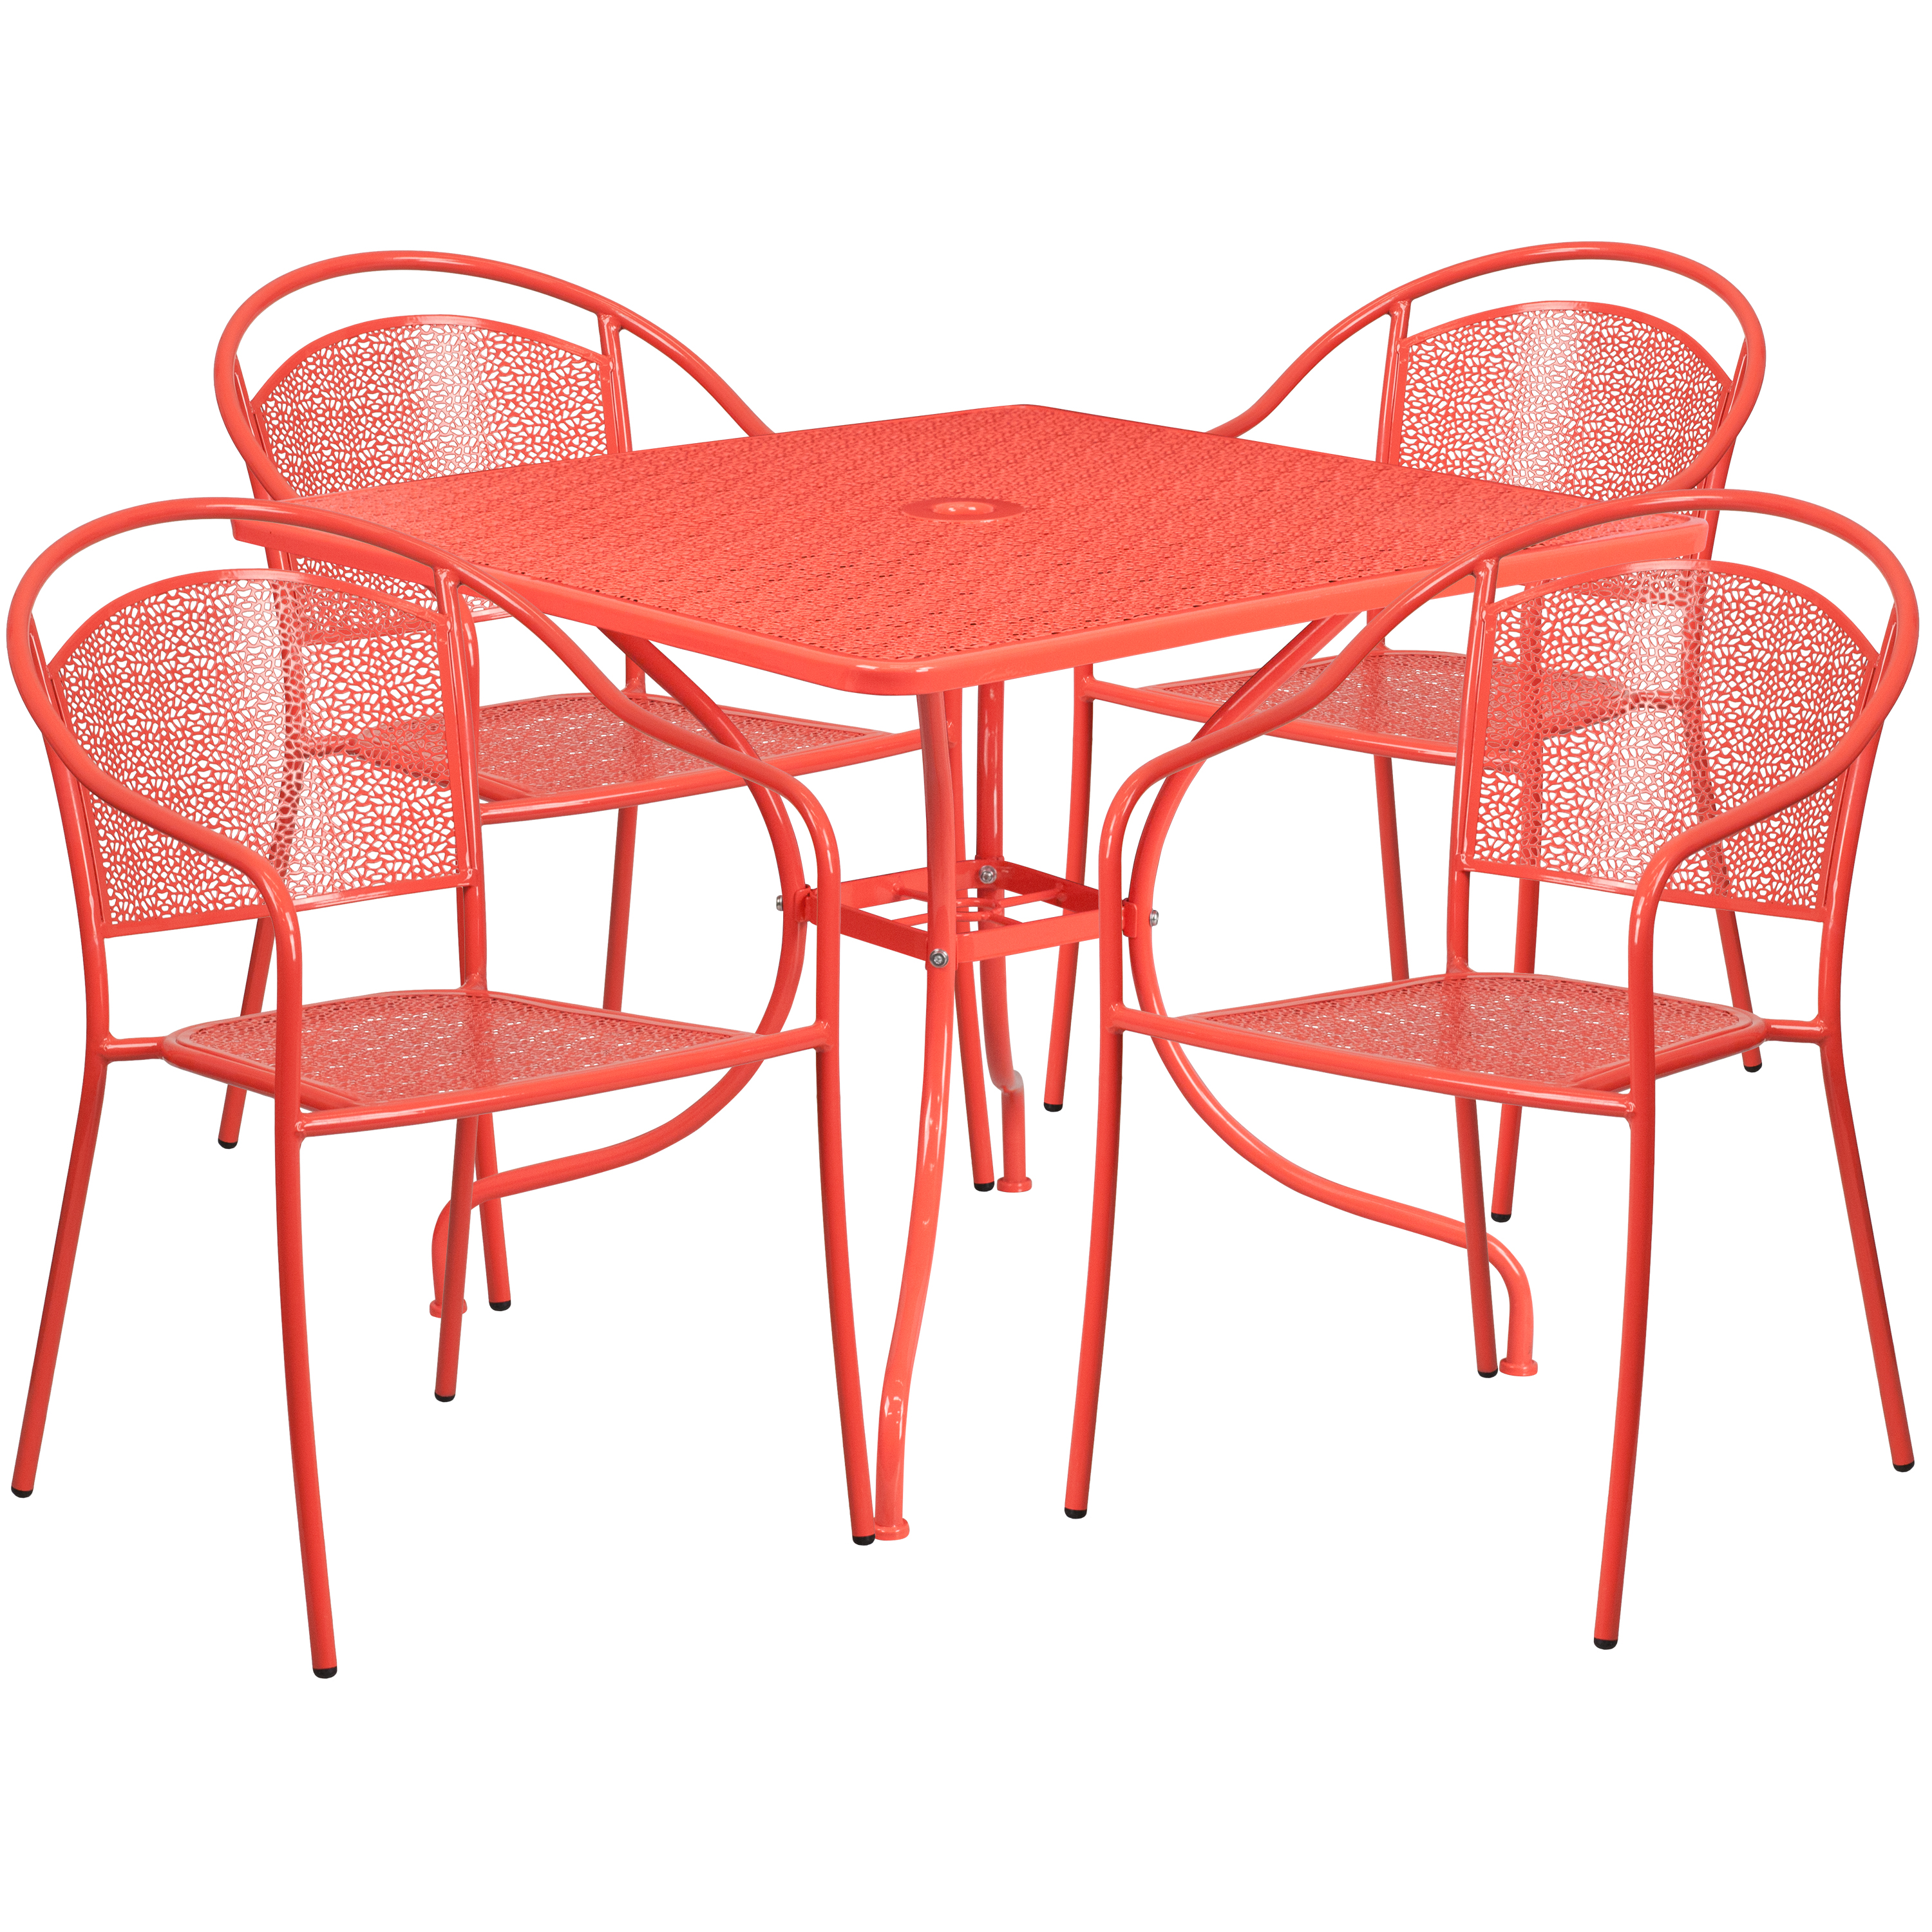 Flash Furniture 35.5'' Square Indoor-Outdoor Steel Patio Table Set with 4 Round Back Chairs, Multiple Colors